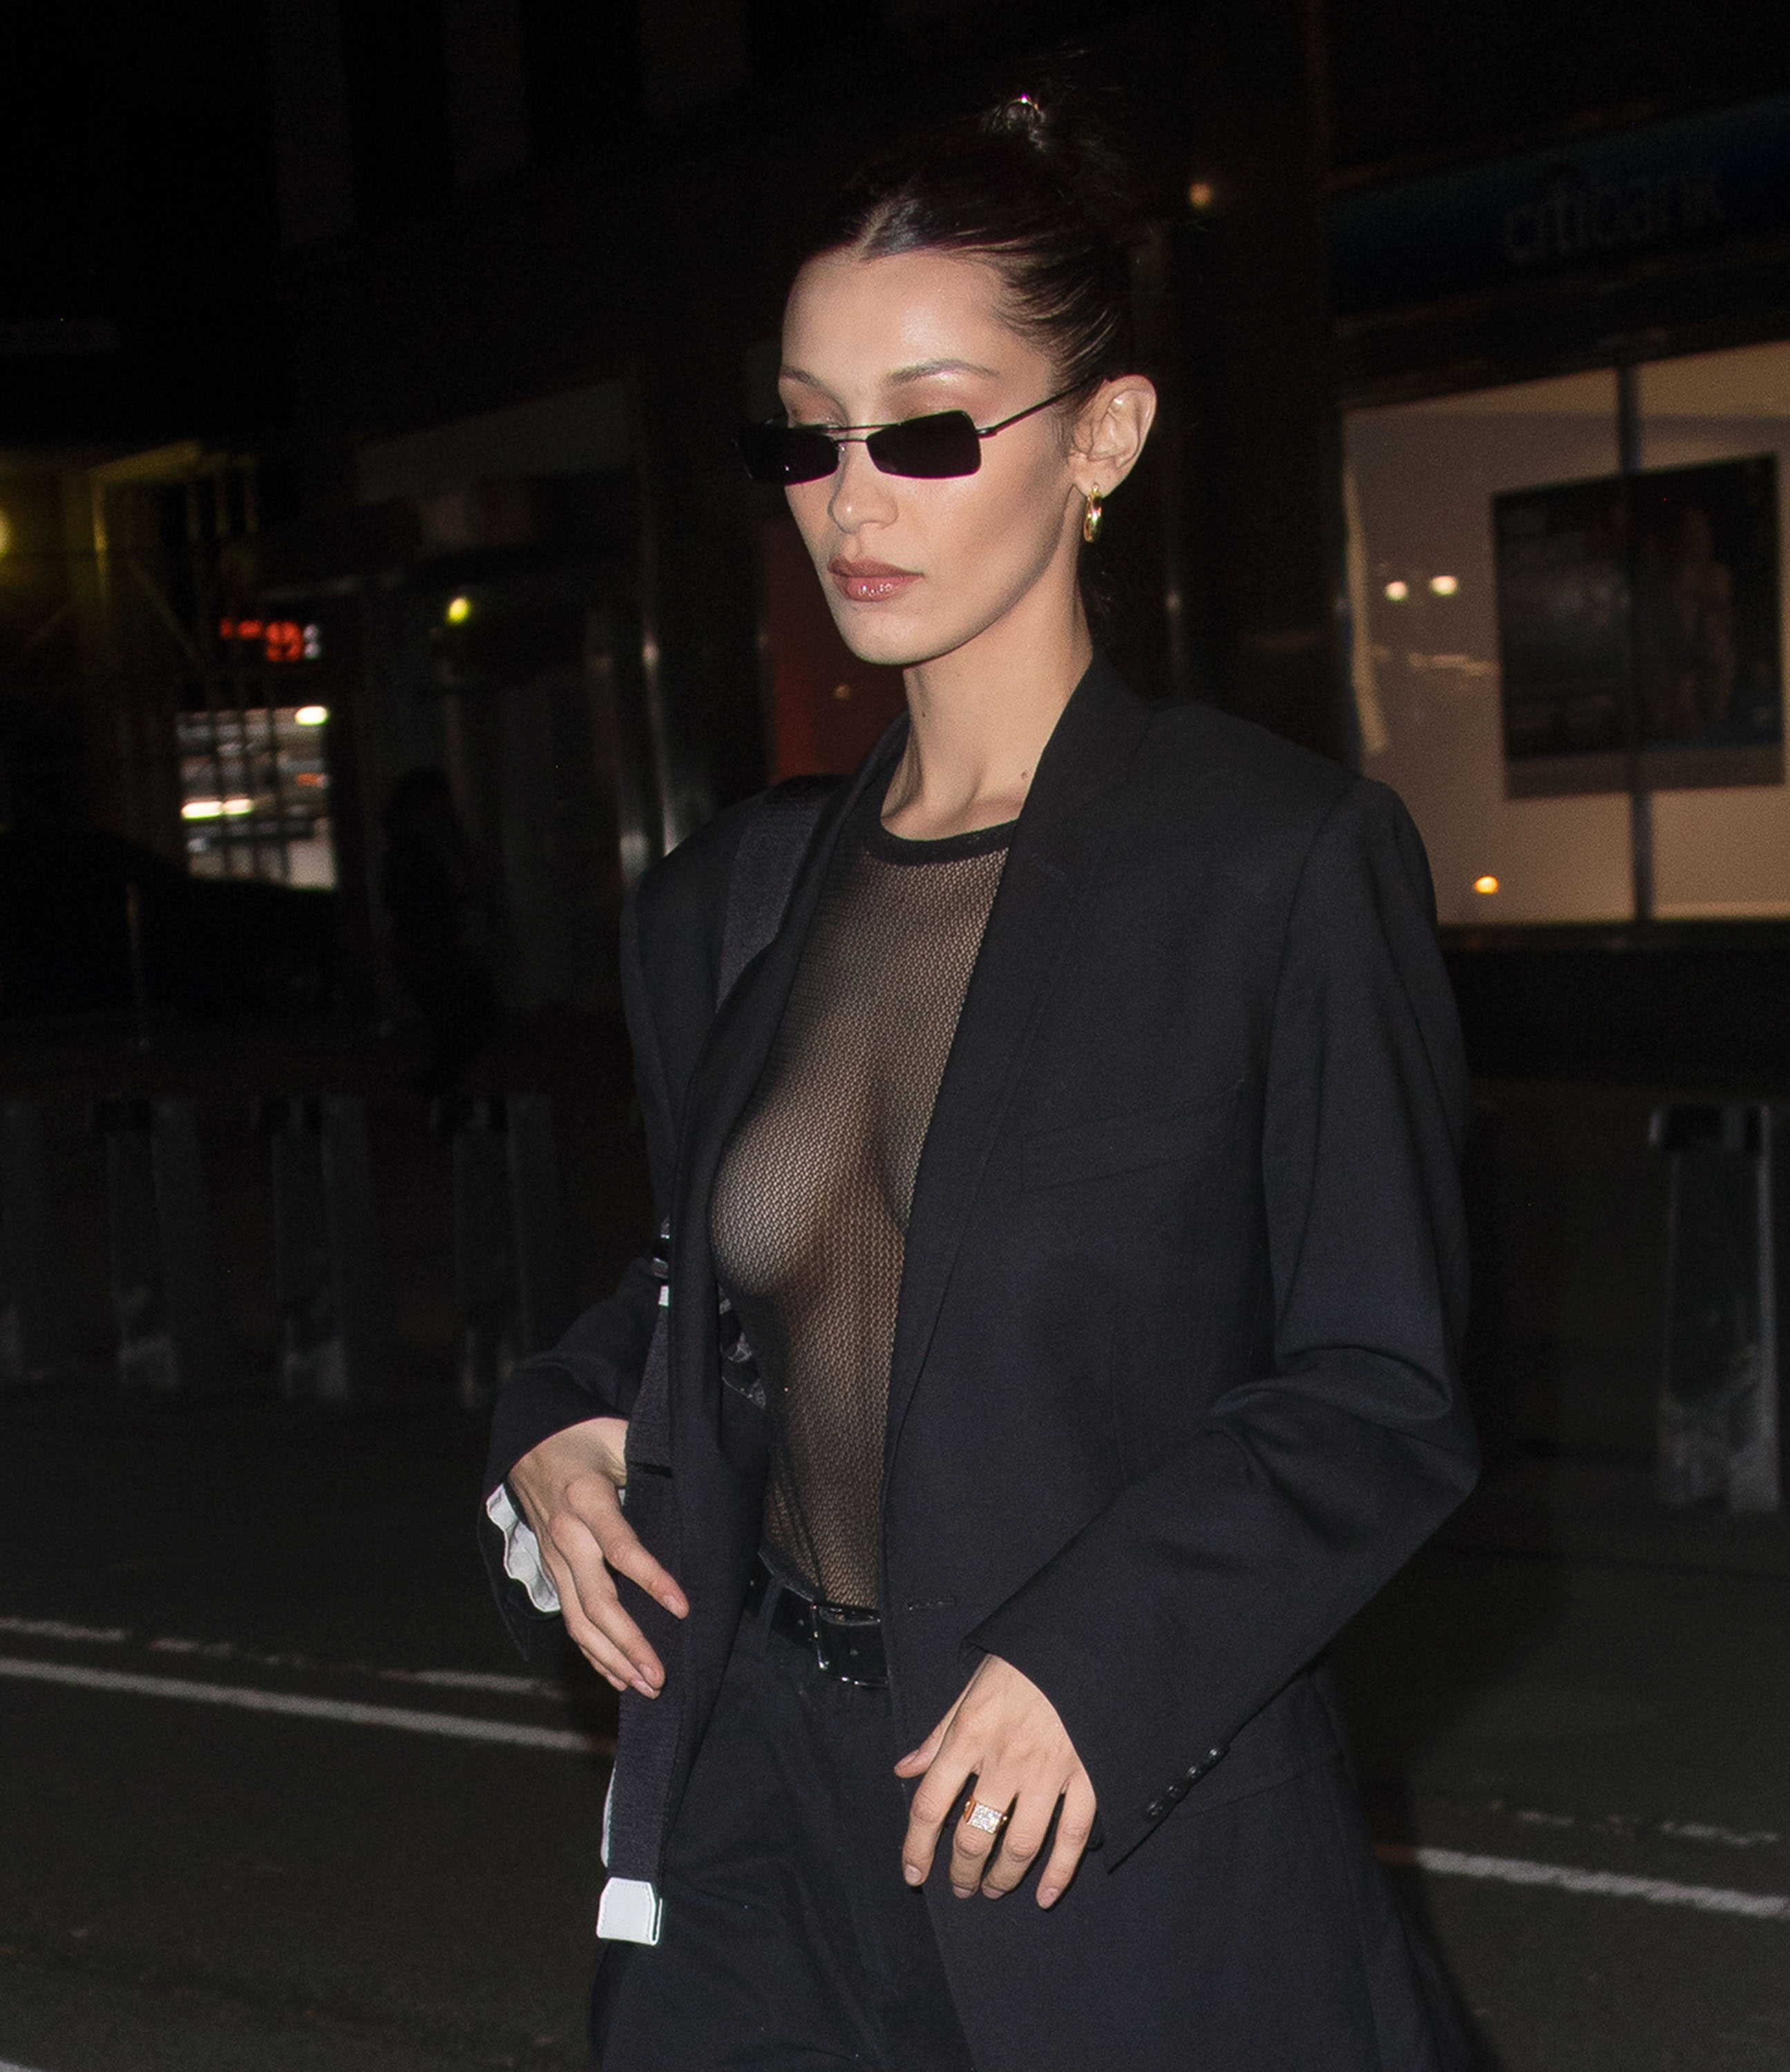 Bella Hadid wears a sheer see-through black top when out and about in New York, 11/04/2018.